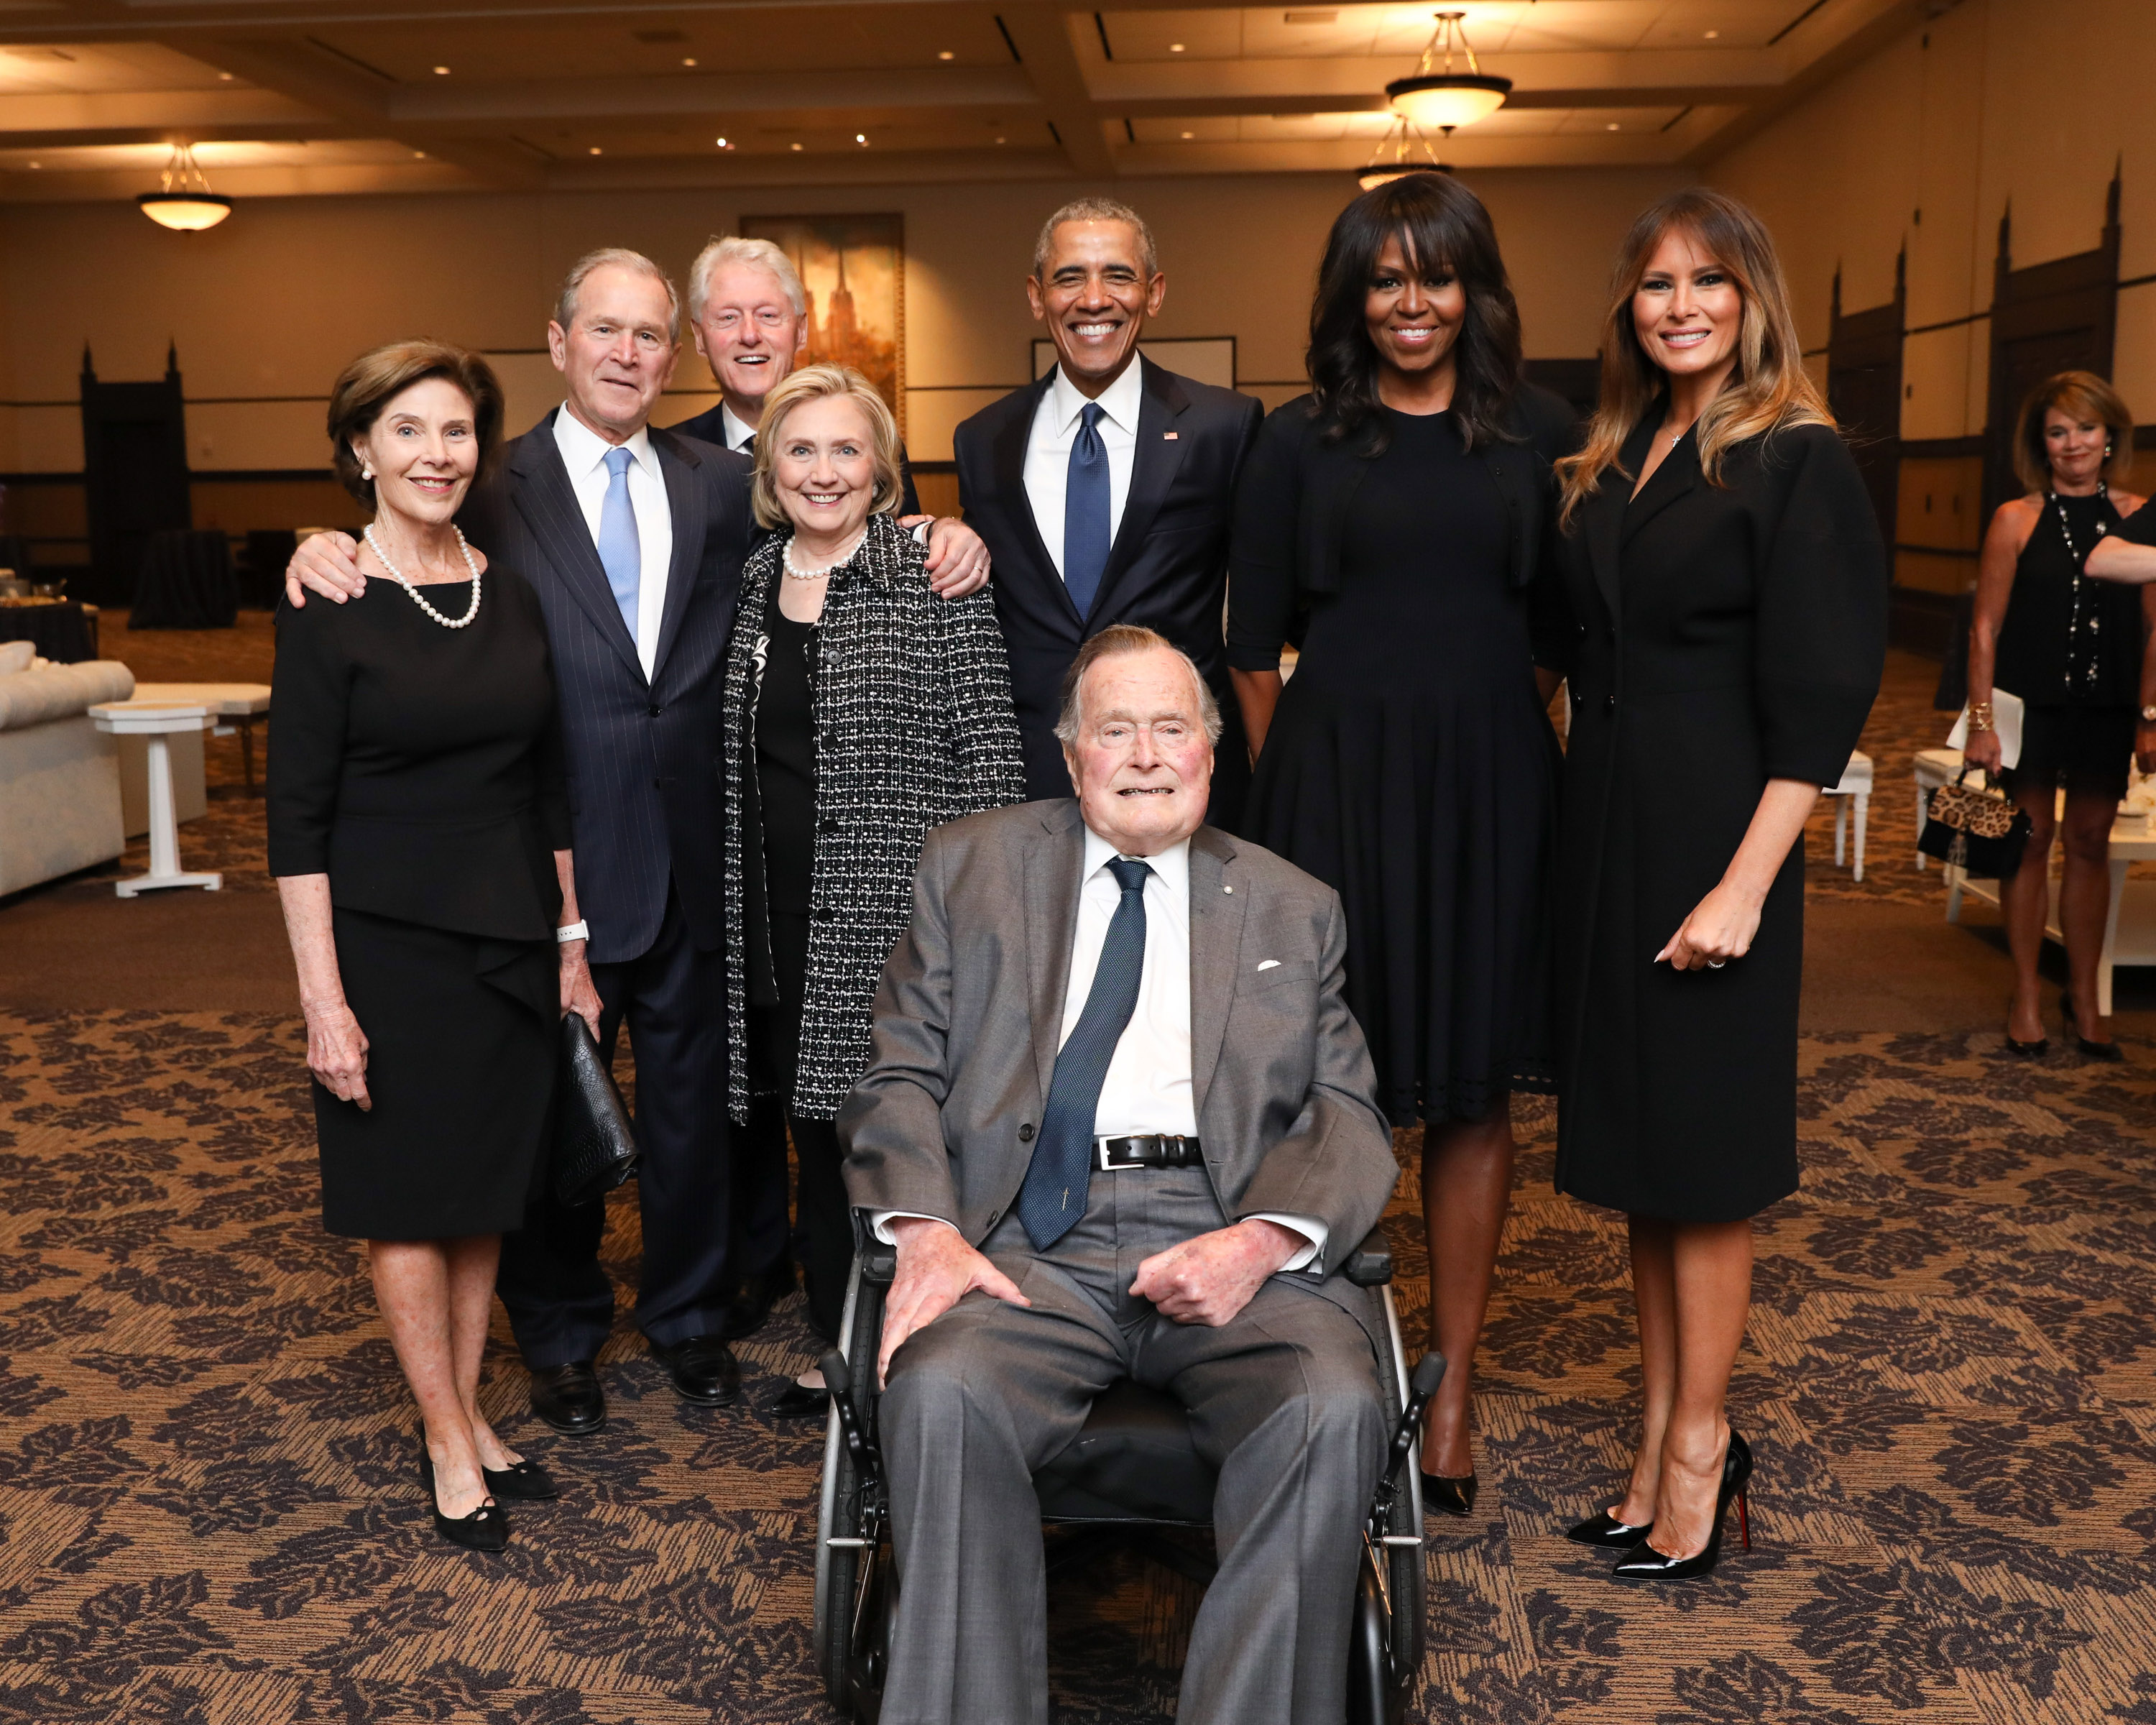 All 4 Living Former First Ladies Have Now Condemned Family